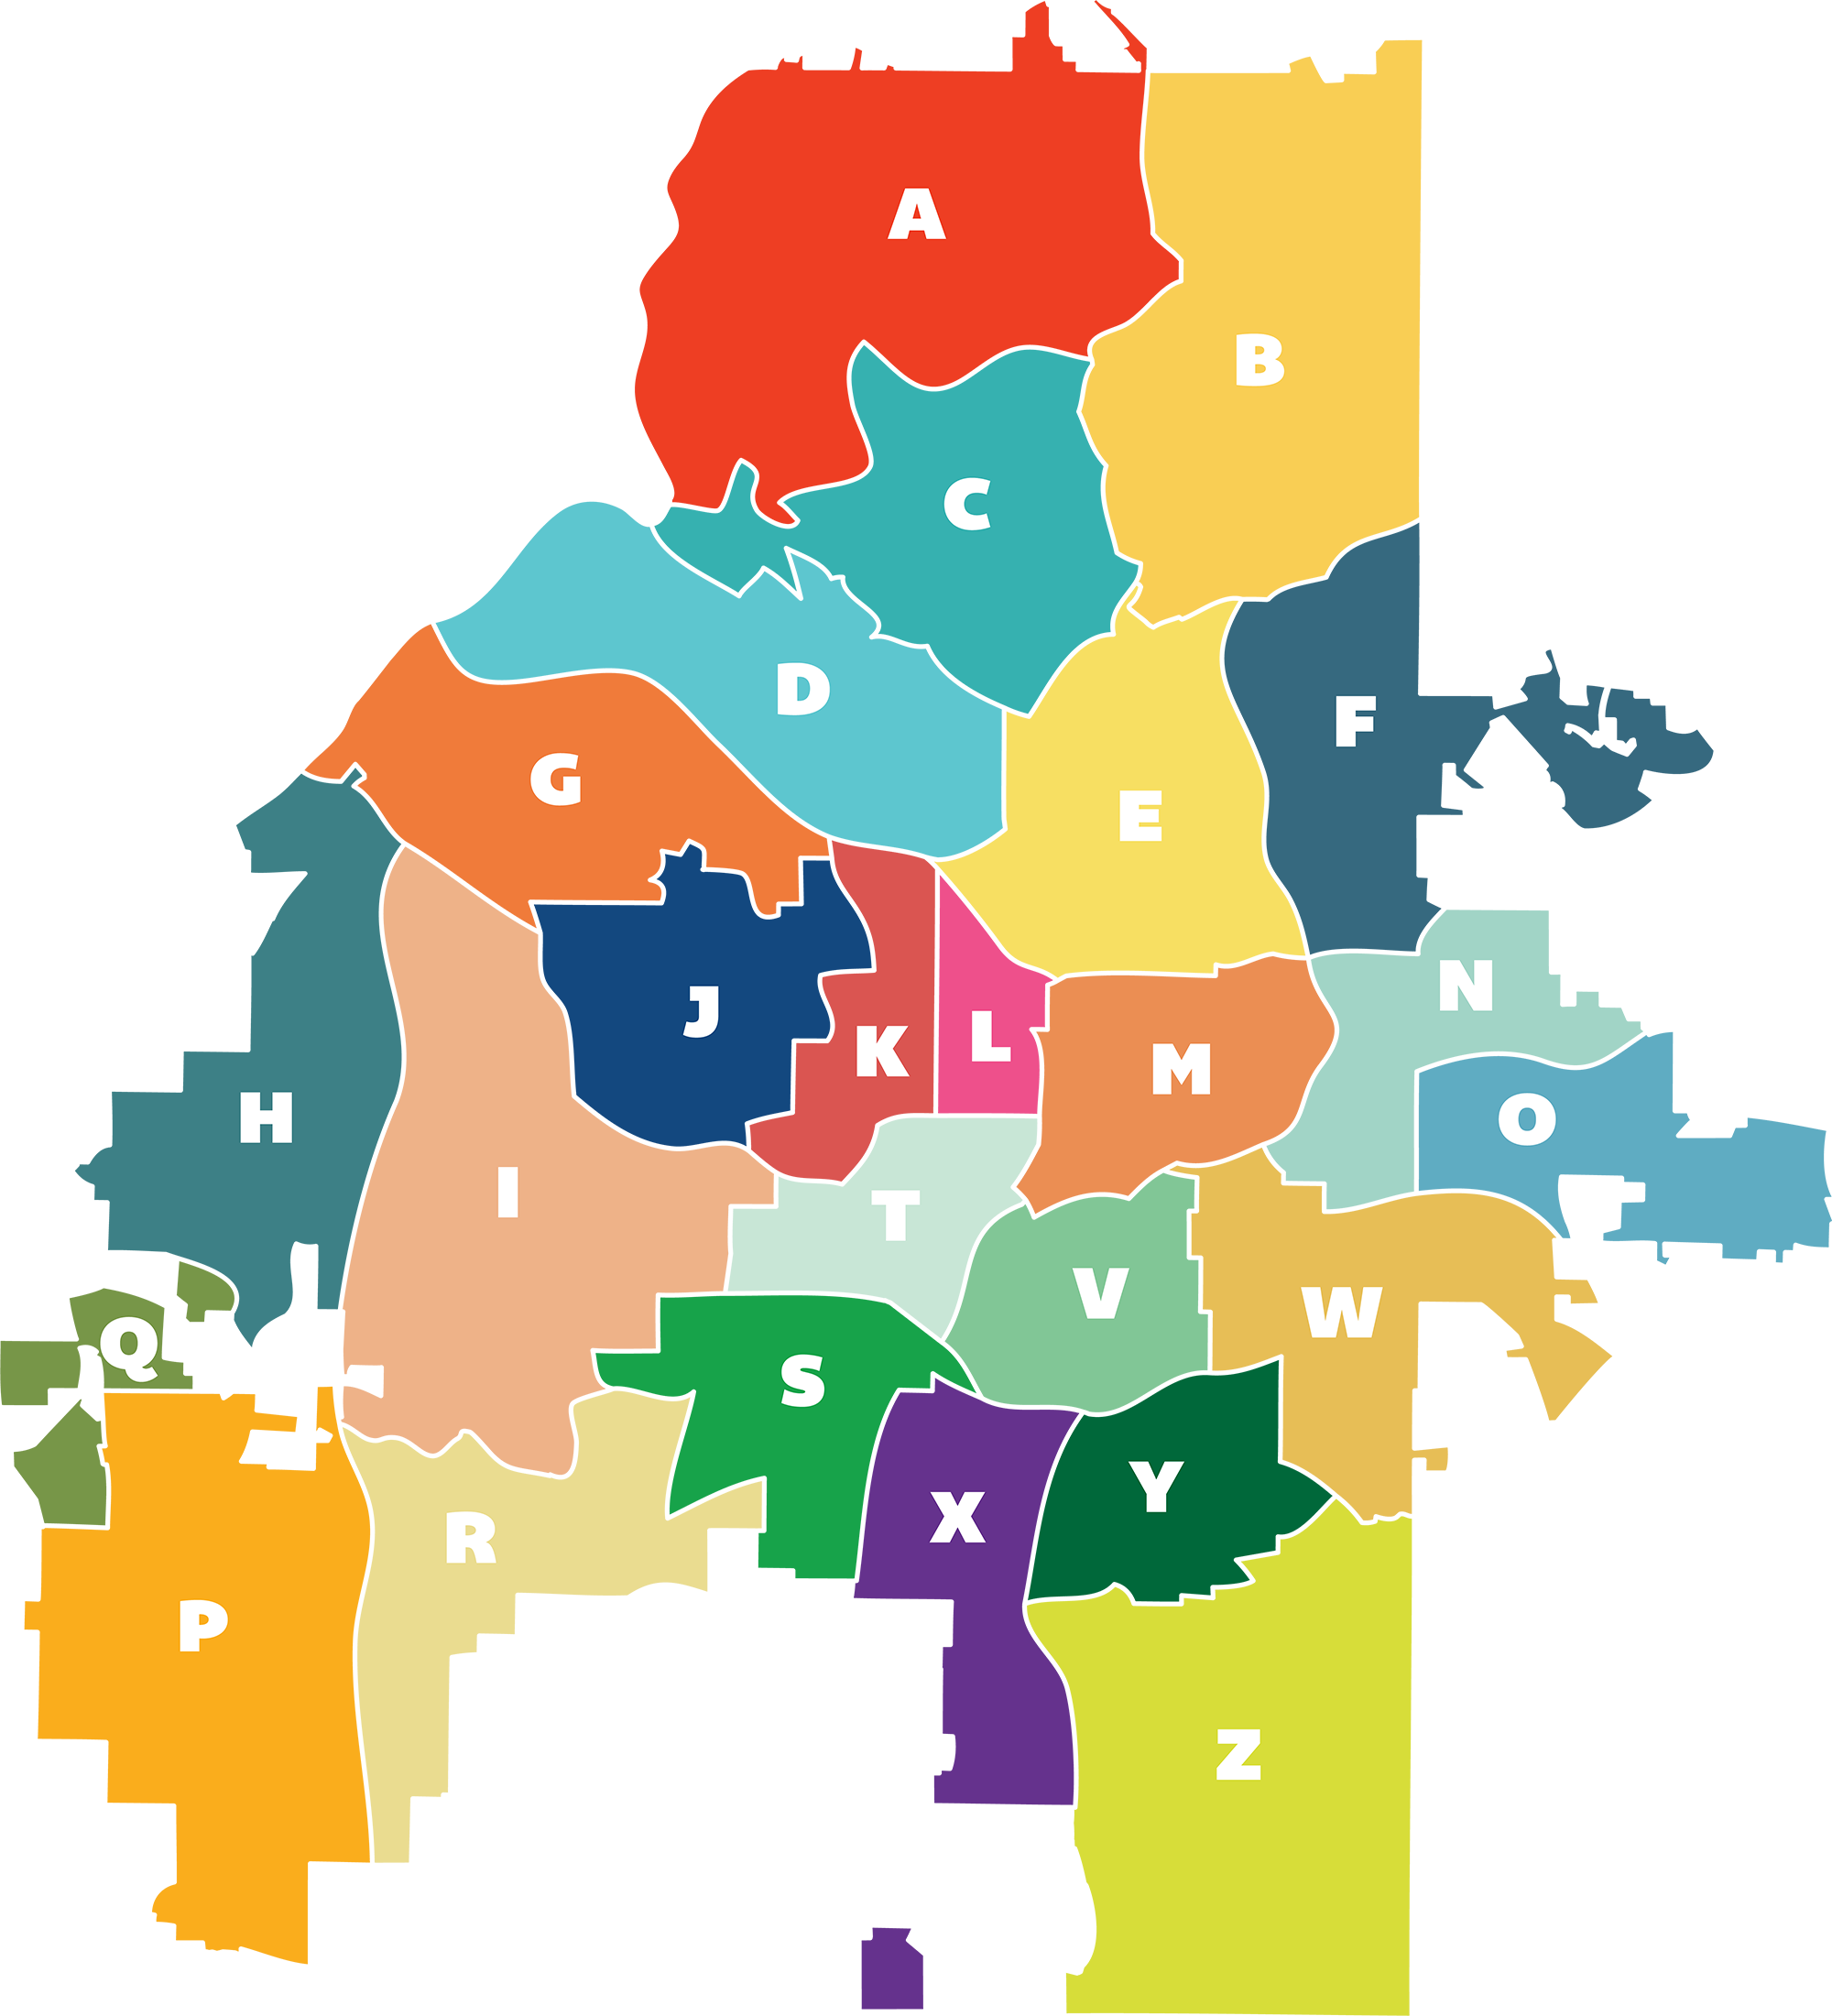 The City of Atlanta is divided into25 NPUs. - Each contains at least two individual neighborhoods and has been assigned a letter of the alphabet from A to Z.**Except for U, because that would be confusing.